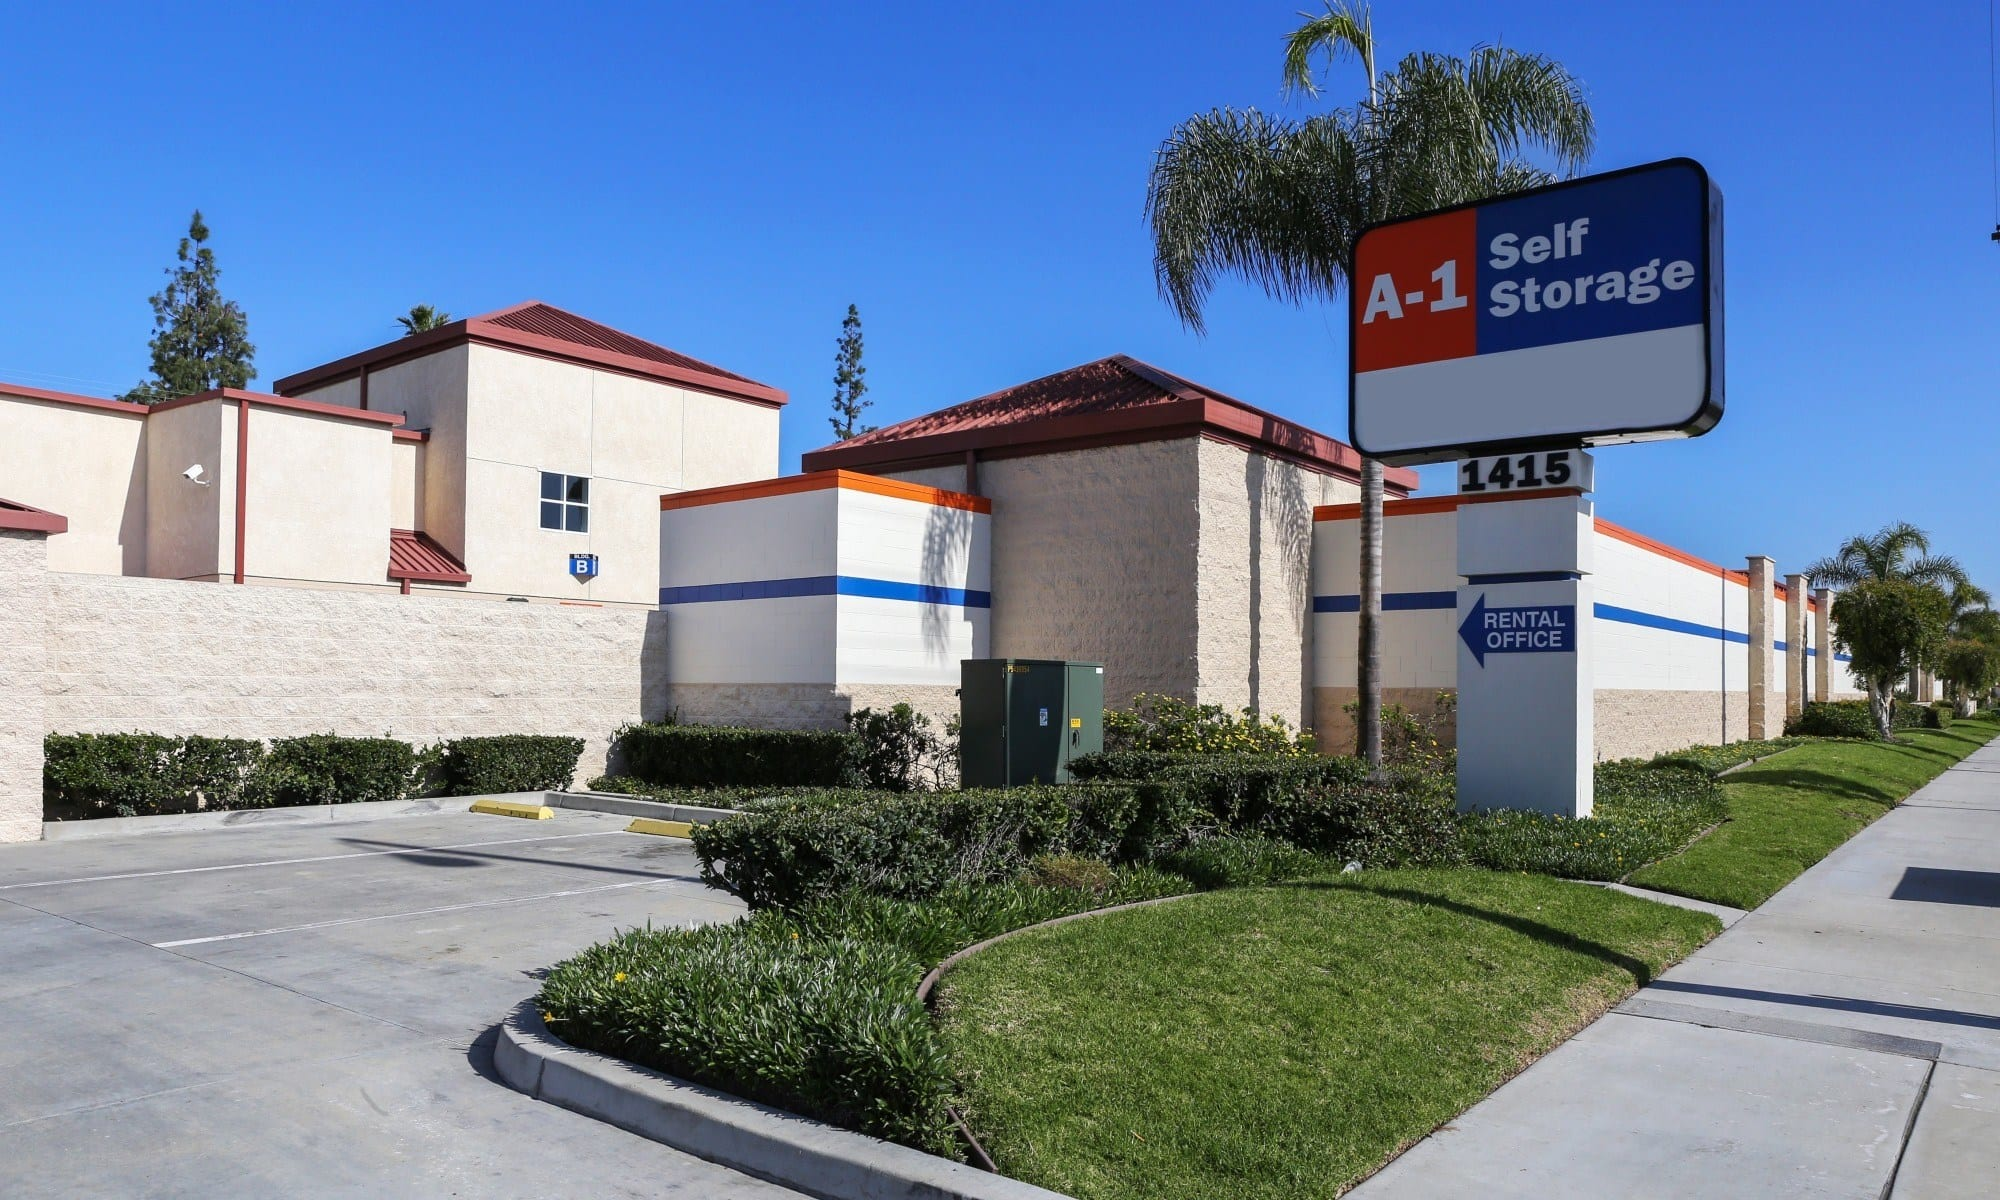 Self storage in Fullerton CA